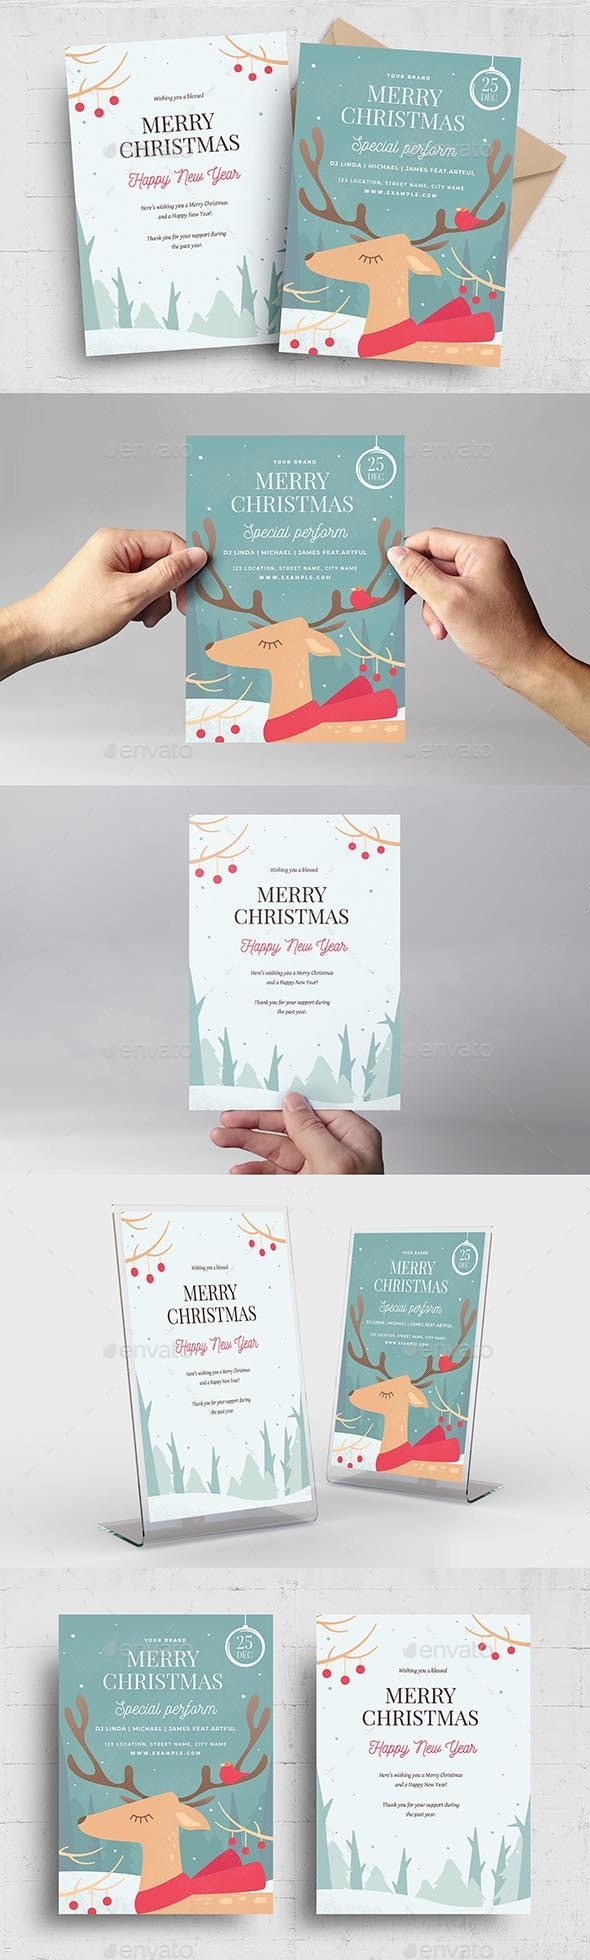 Merry Christmas Greetings Cards - Holiday Greeting Cards